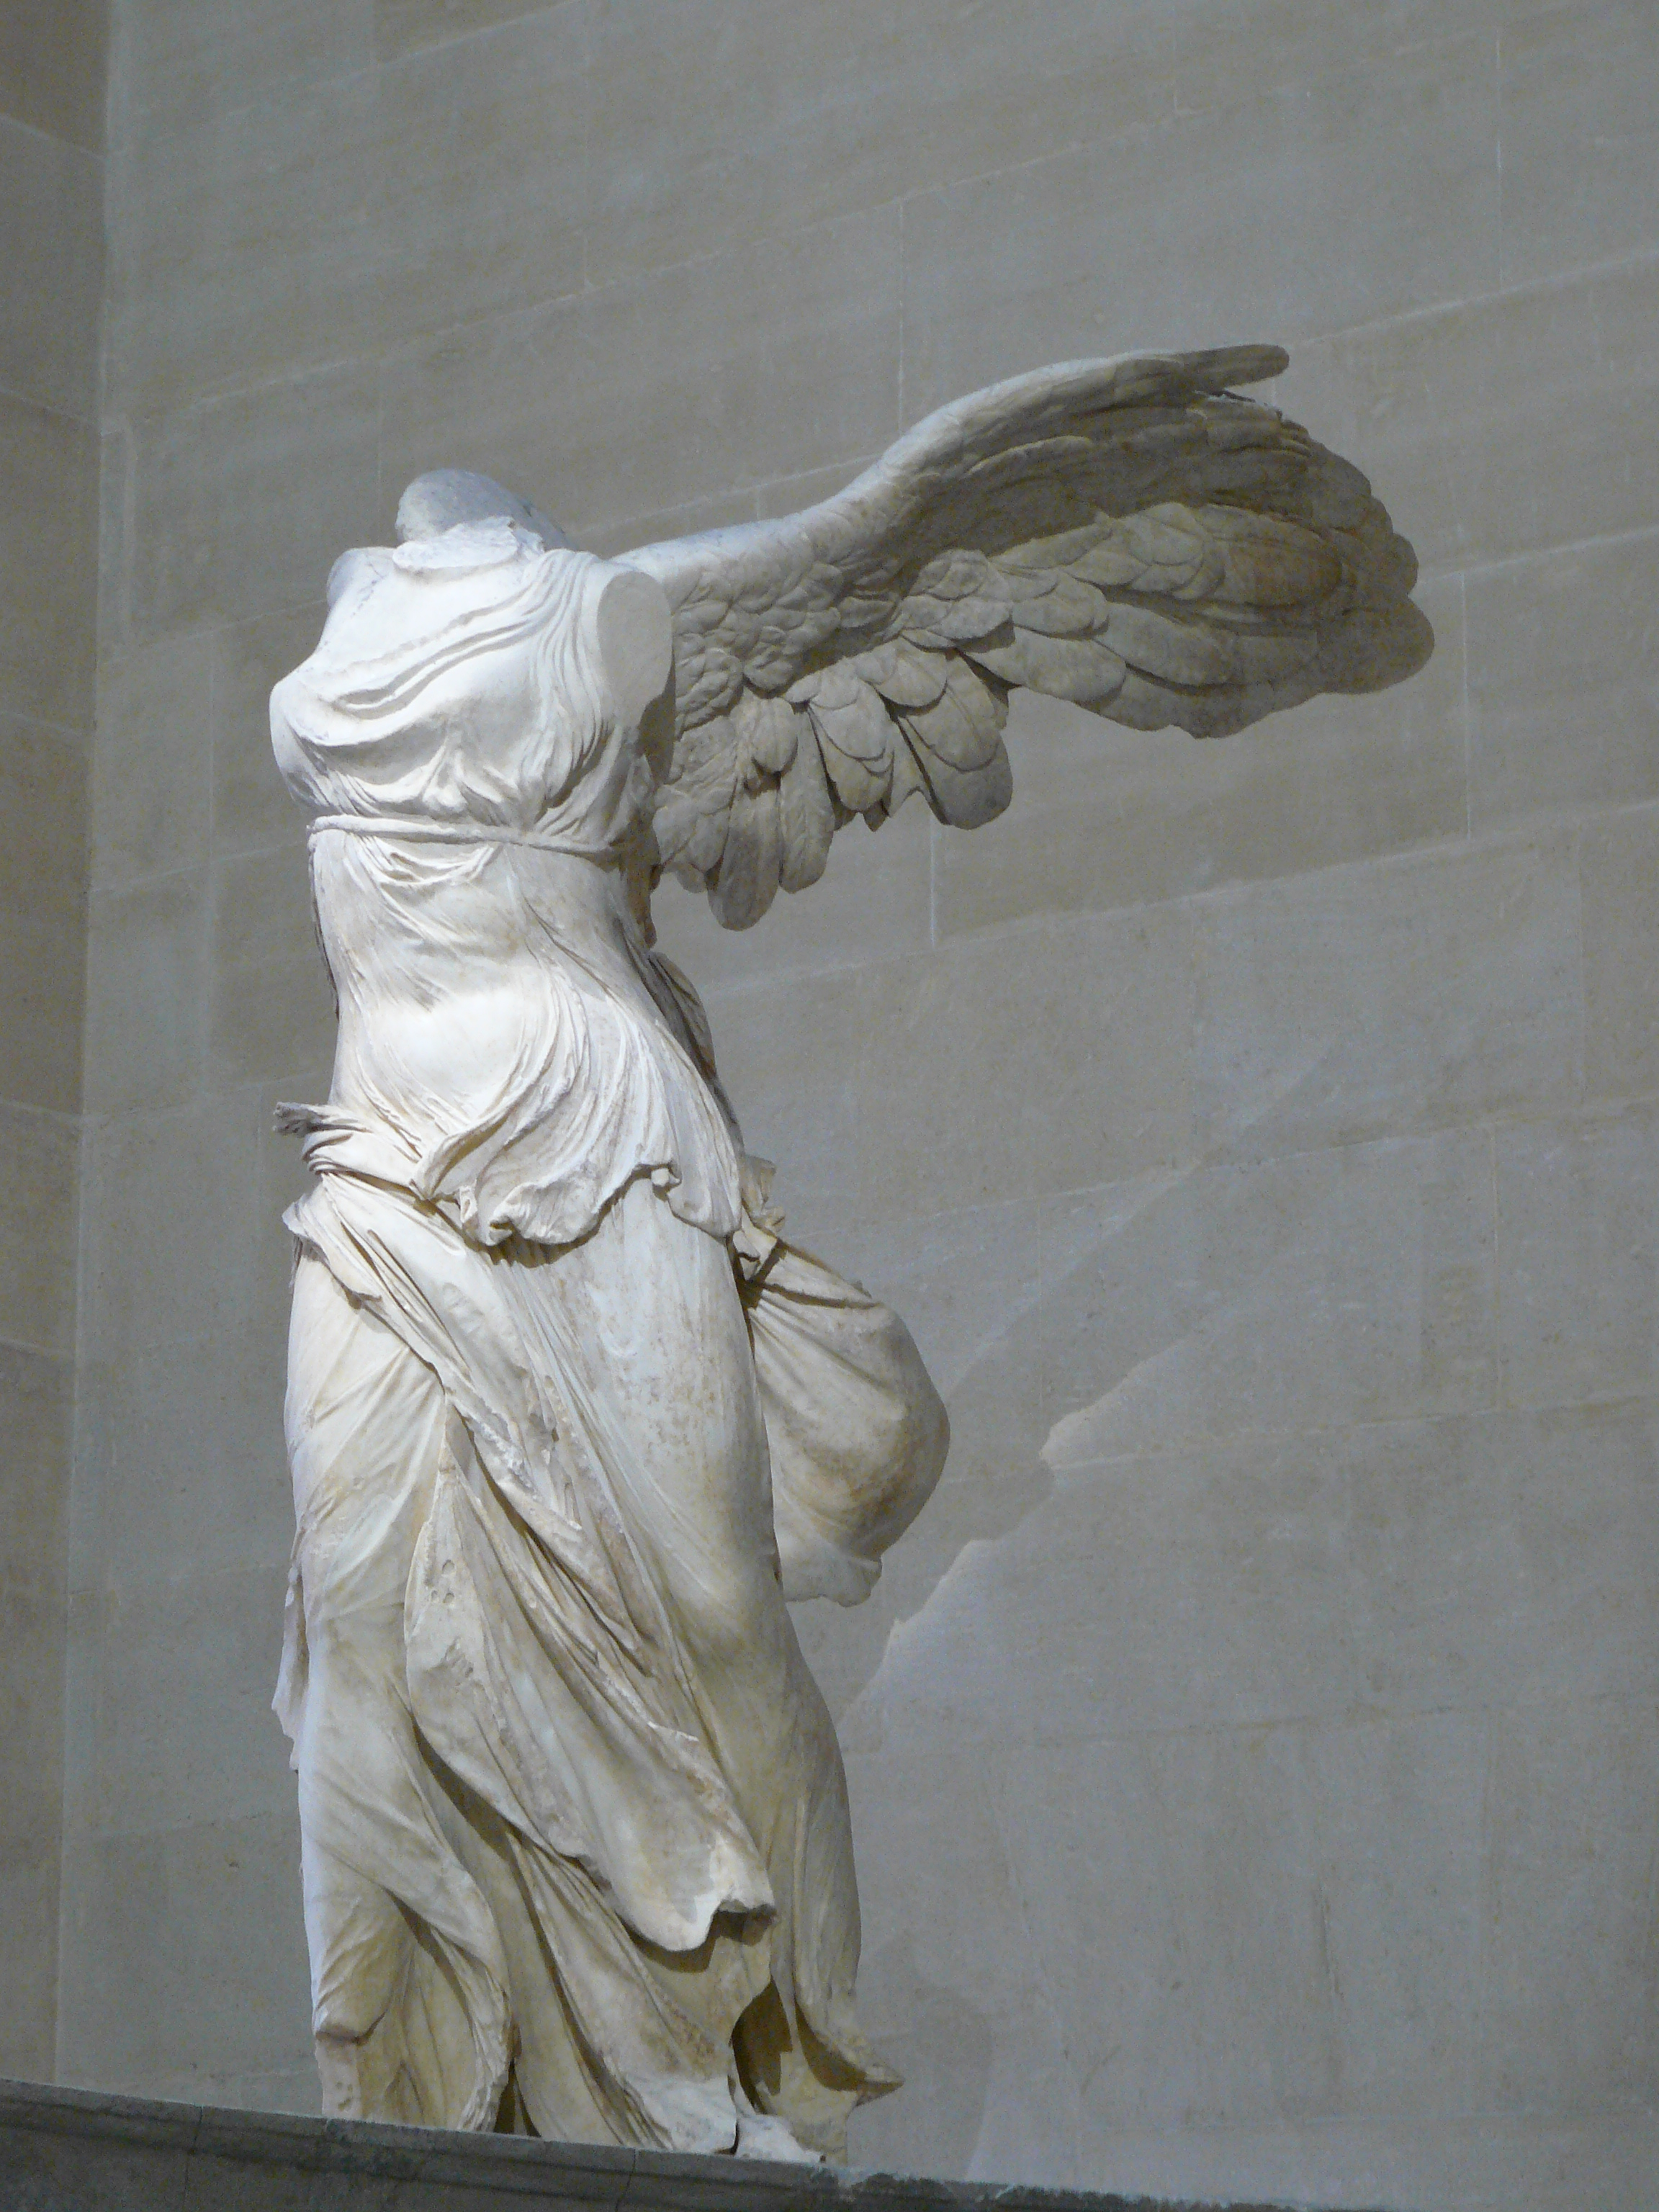 The Winged Victory of Samothrace (Hellenistic, 200 BCE)